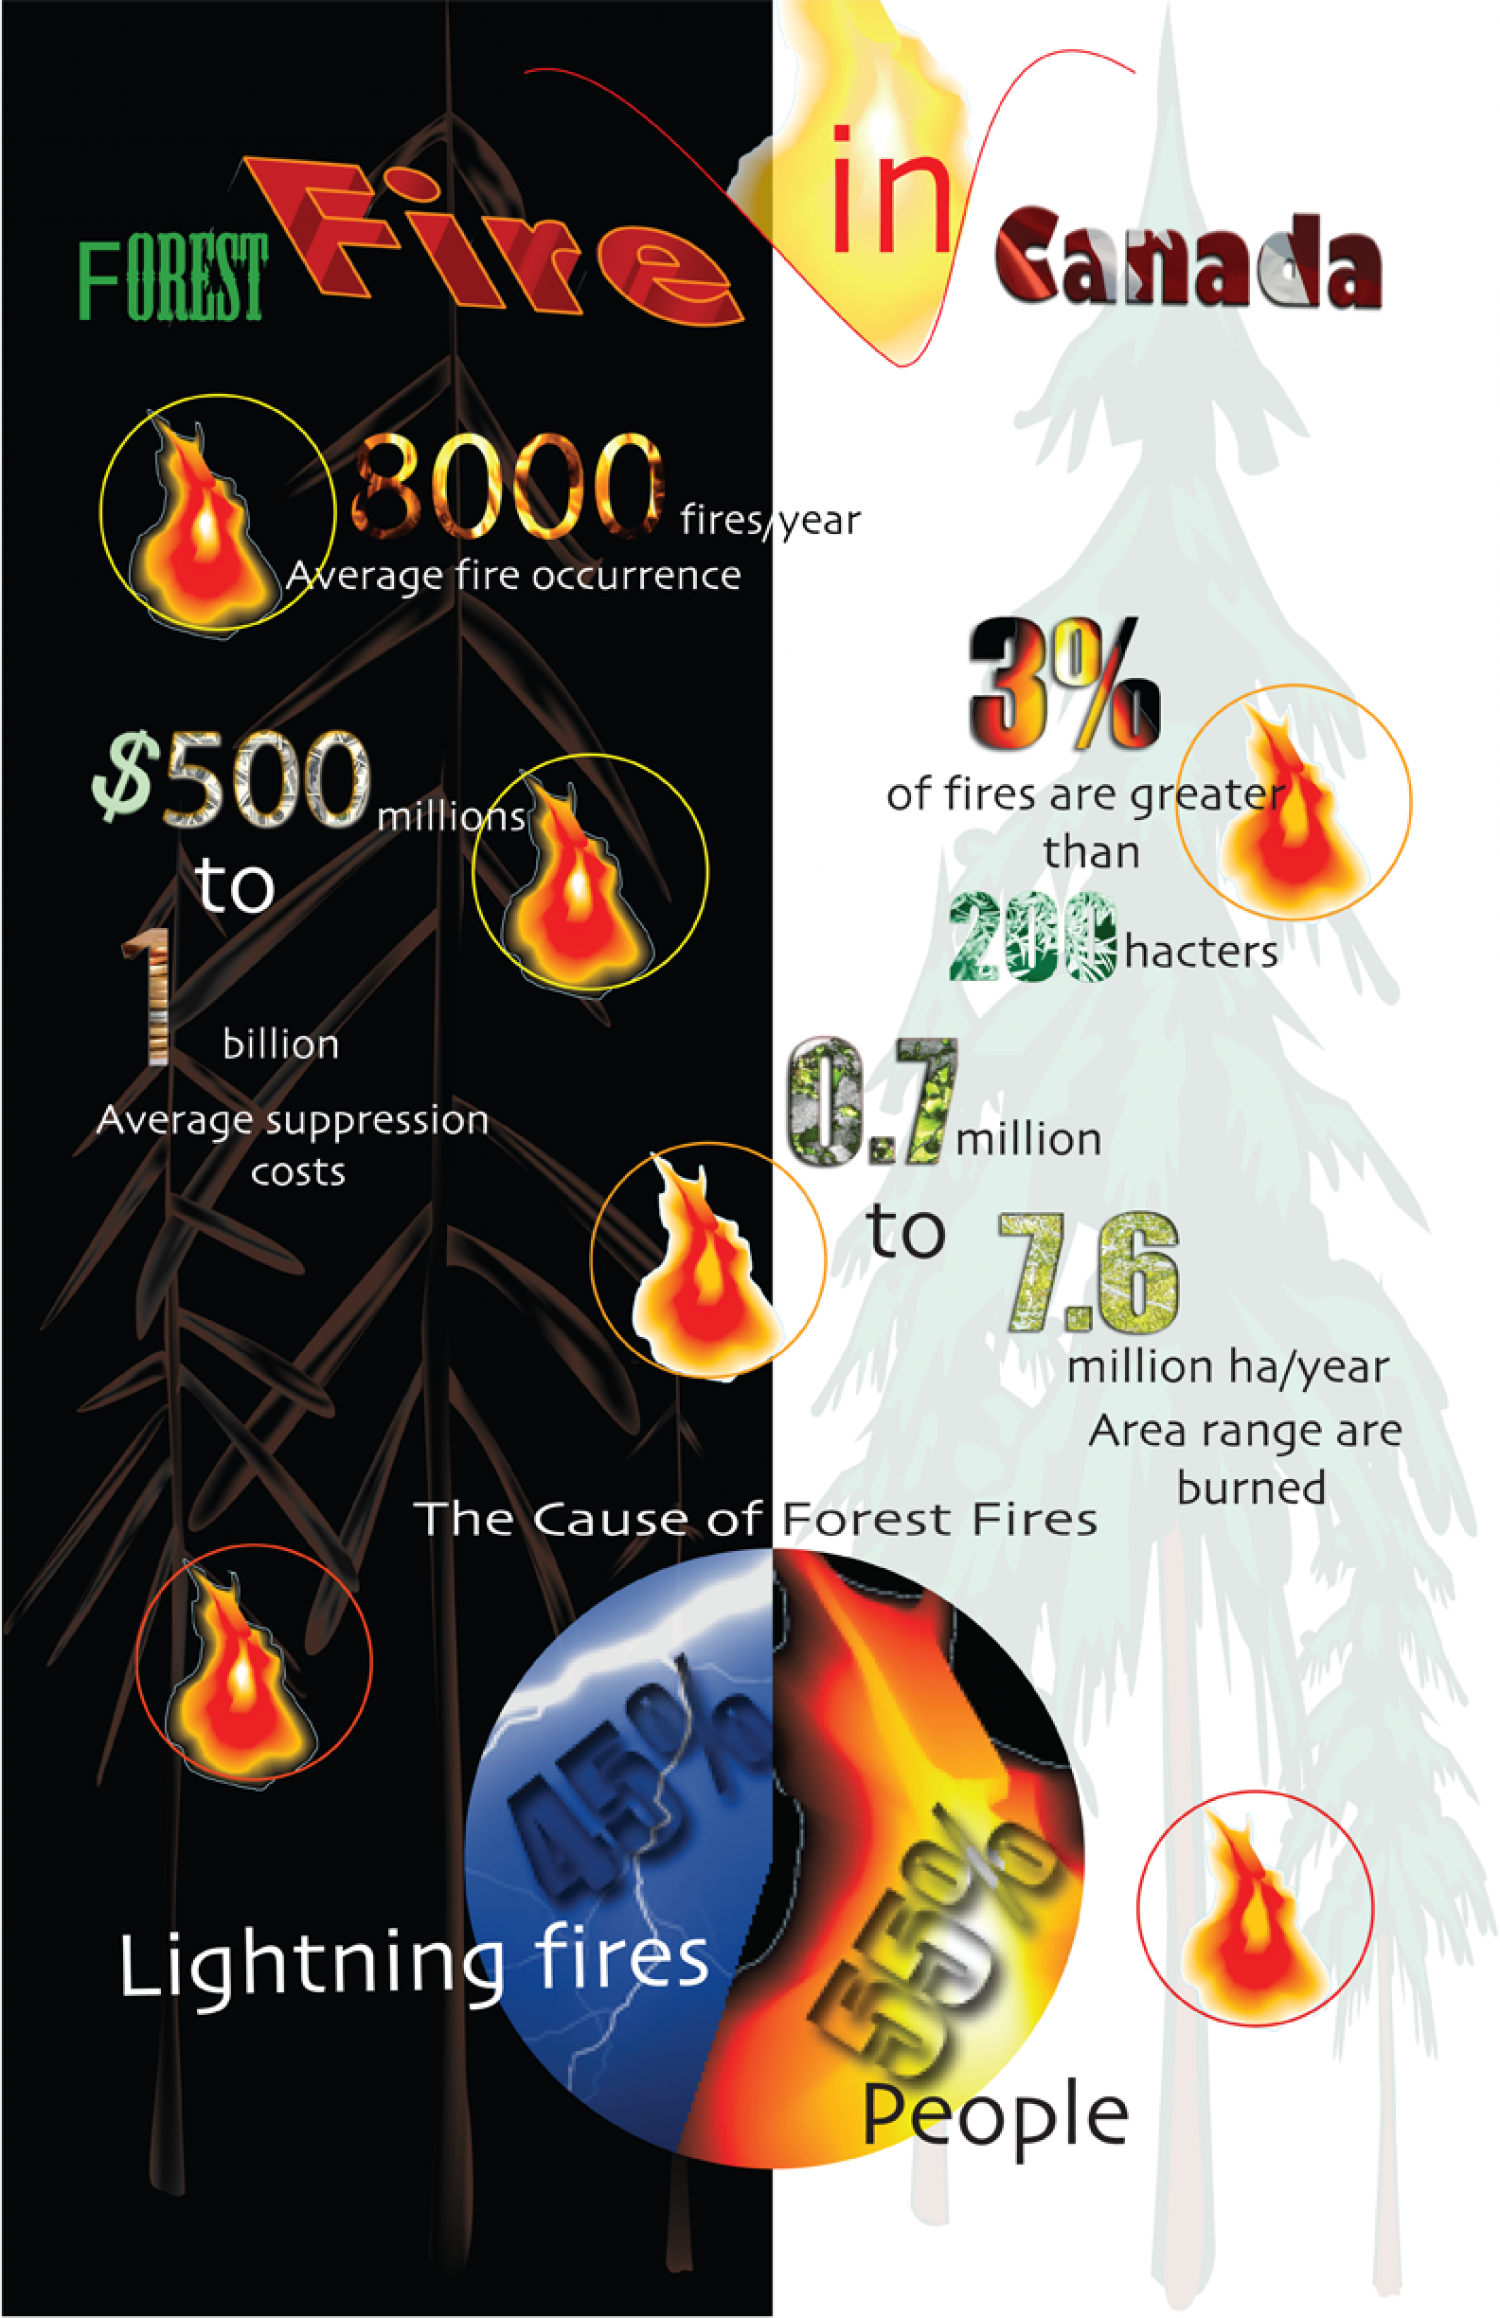 Fire in Canada Infographic